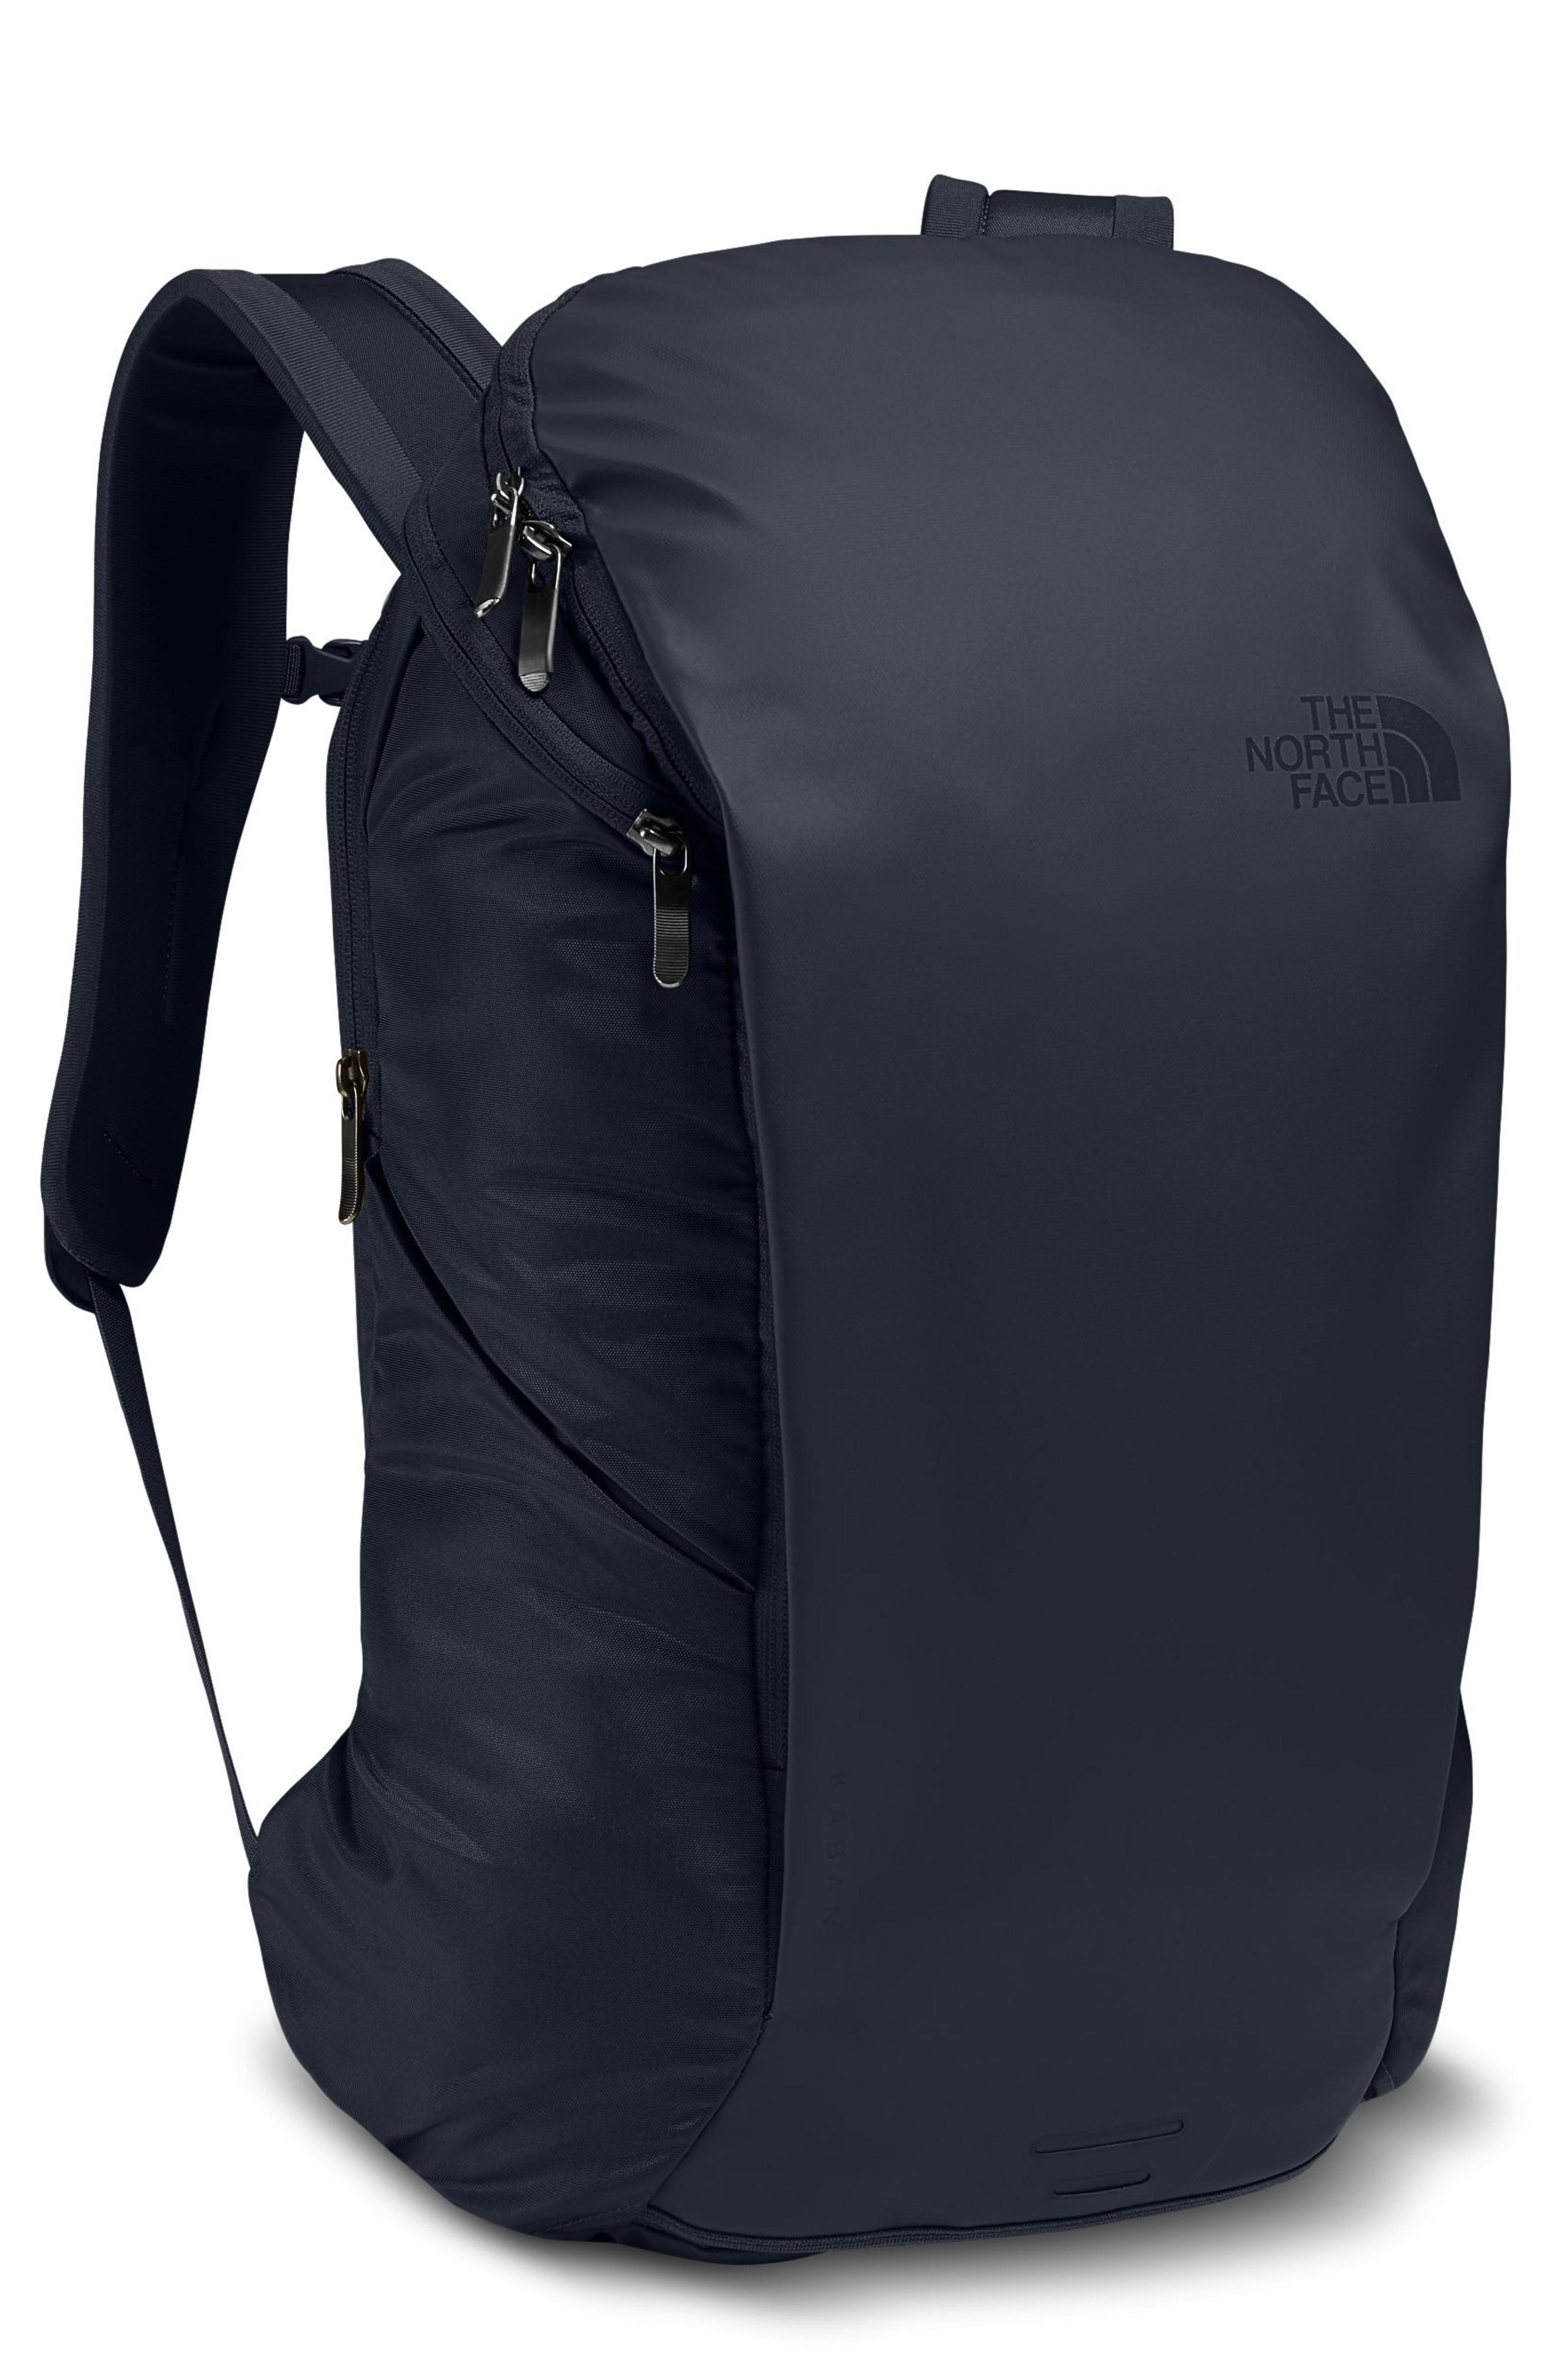 The North Face Ka-ban Backpack - Blue In Urban Navy